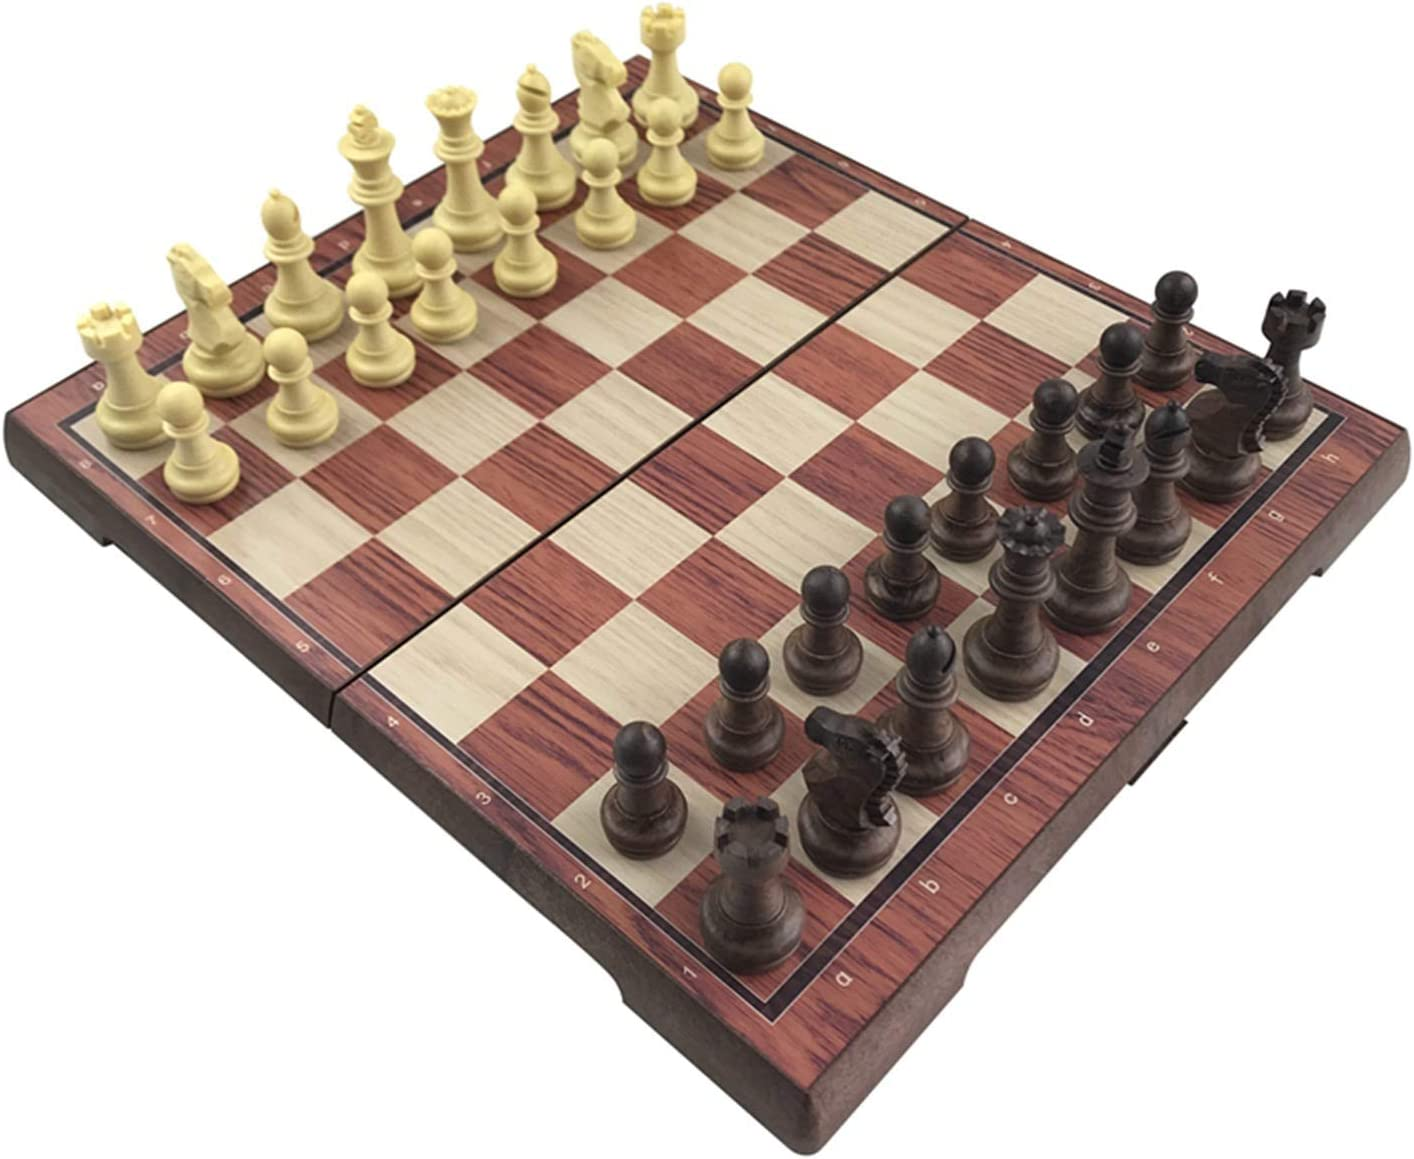 GIAOGIAO International Magnetic Chess New sales Board Ches New popularity Set Games